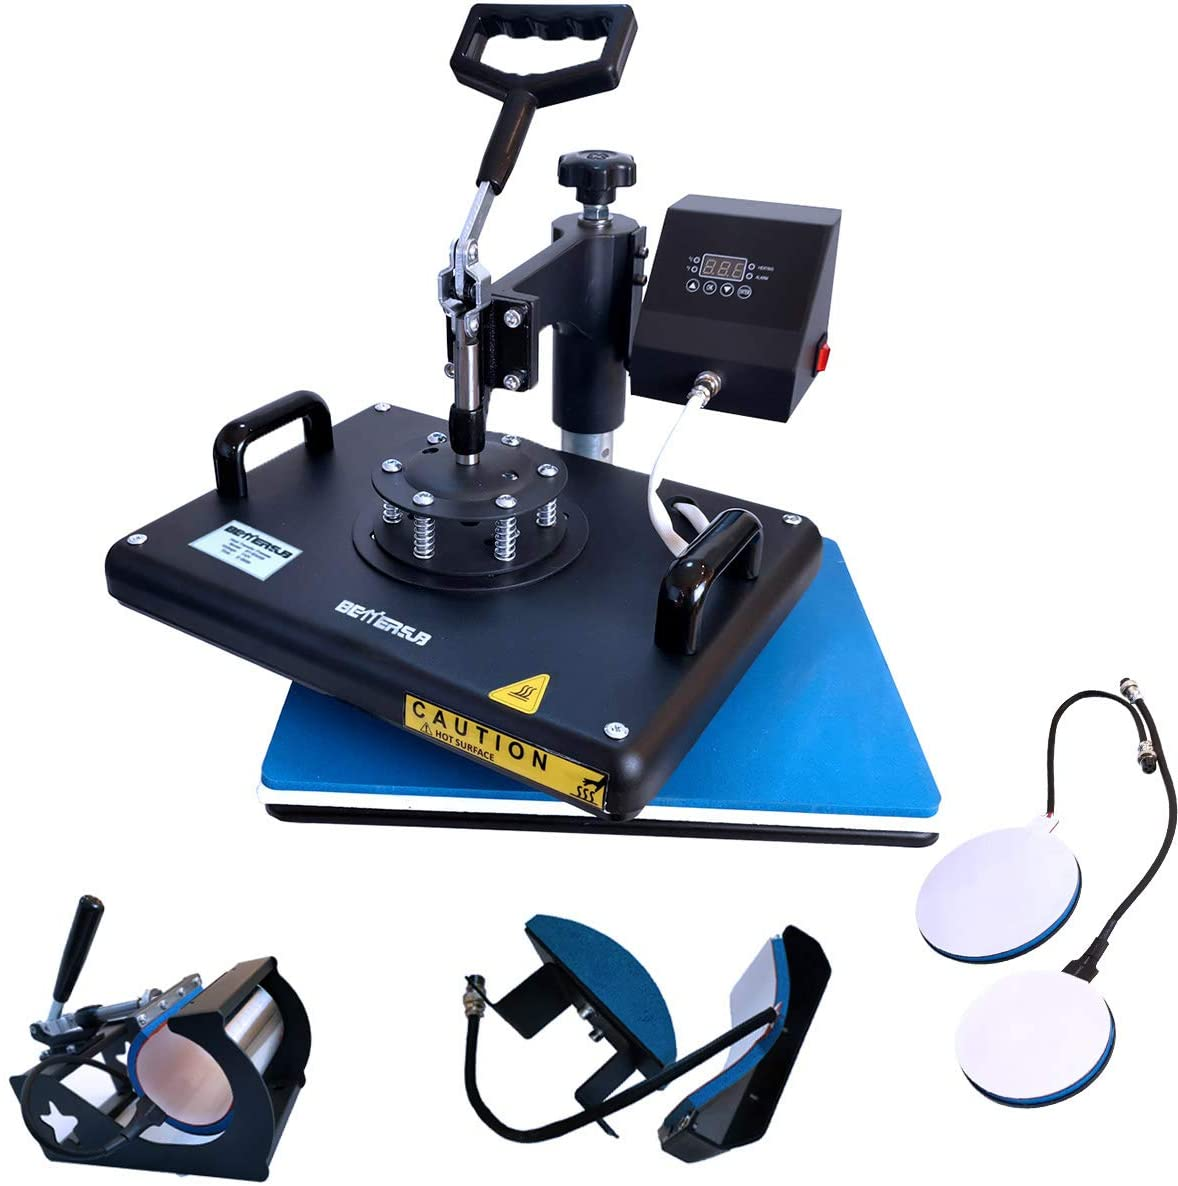 BetterSub Heat Press 5 in 1 Heat Press Machine